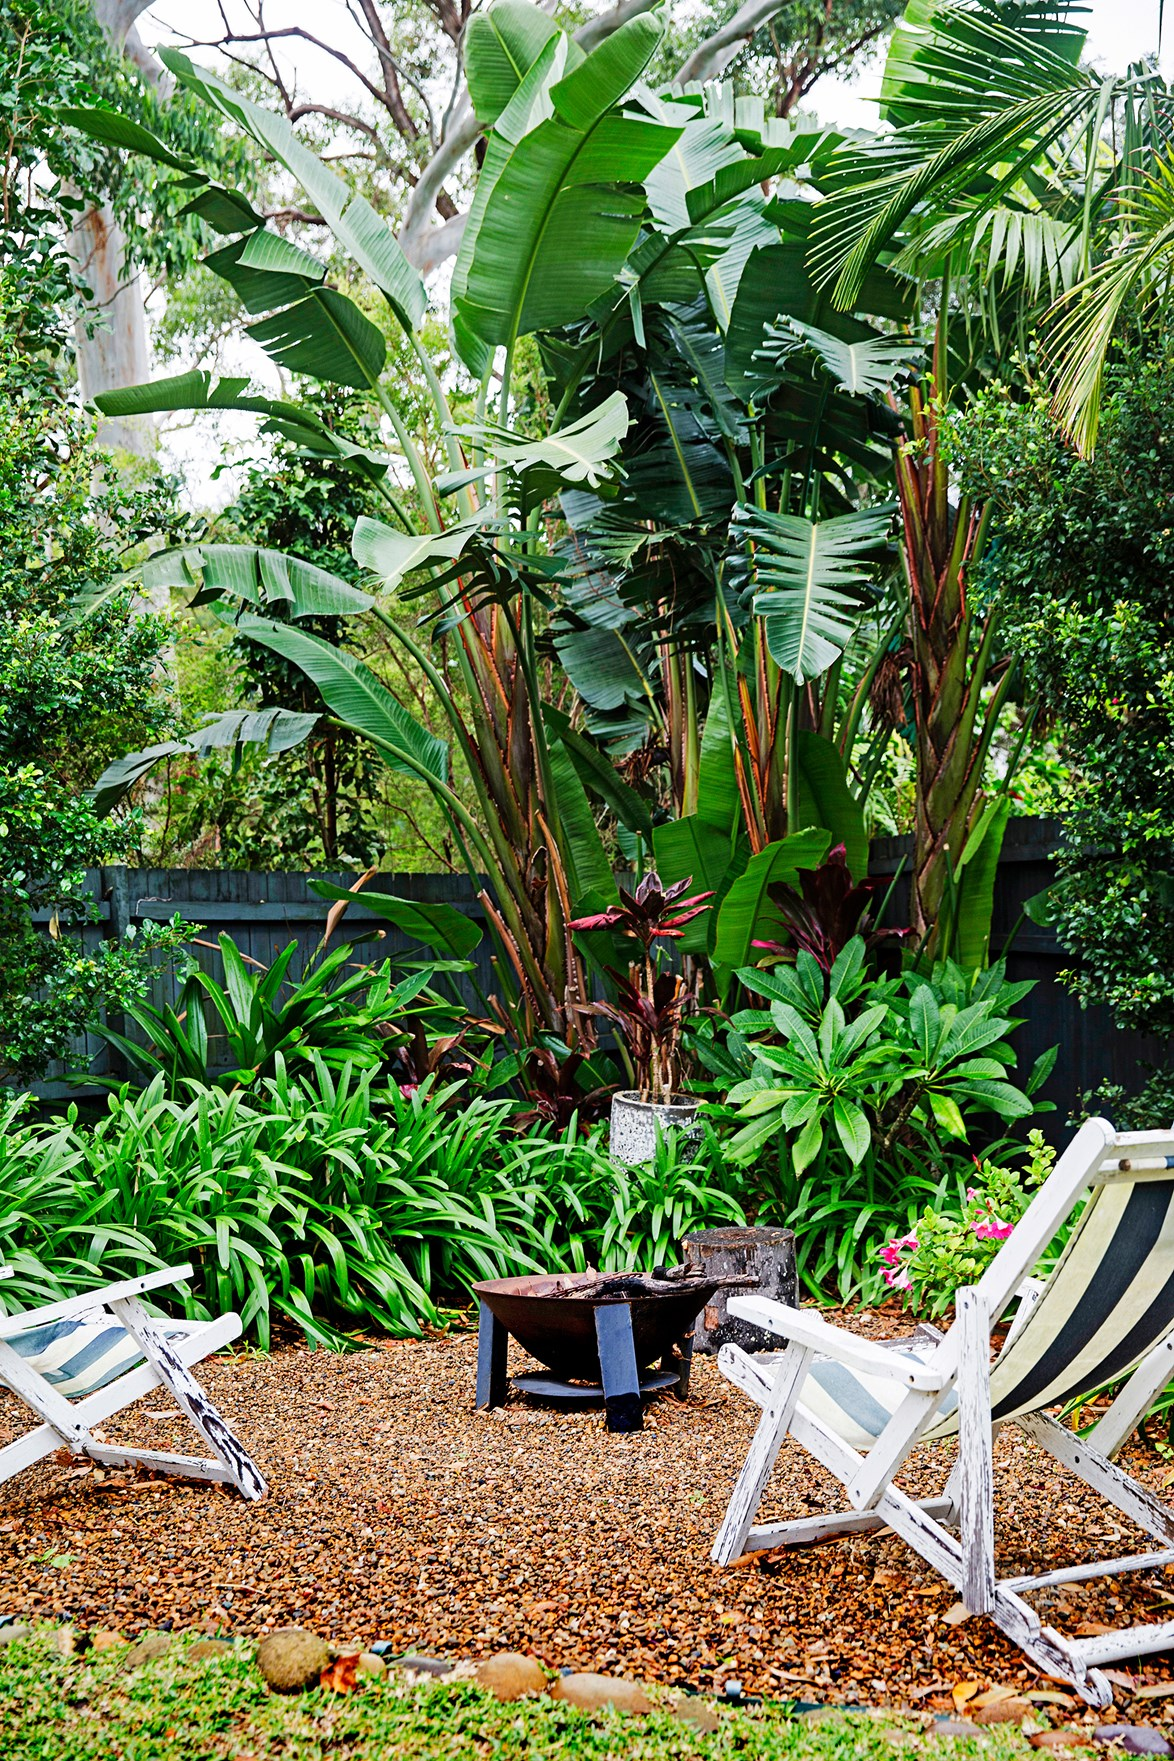 """<p>**TROPICAL GARDEN**<p> <P>Experience those 'away on vacation' vibes every day by creating a [luxurious tropical escape](https://www.homestolove.com.au/tropical-garden-melbourne-7183 target=""""_blank"""") in your own backyard. A combination of [large leafy plants](https://www.homestolove.com.au/large-indoor-plants-6637 target=""""_blank"""") and sculptural lower level plantings like agave will have you nailing the look in no time!<p> <P>*Photo: James Henry / bauersyndication.com.au* <p>"""